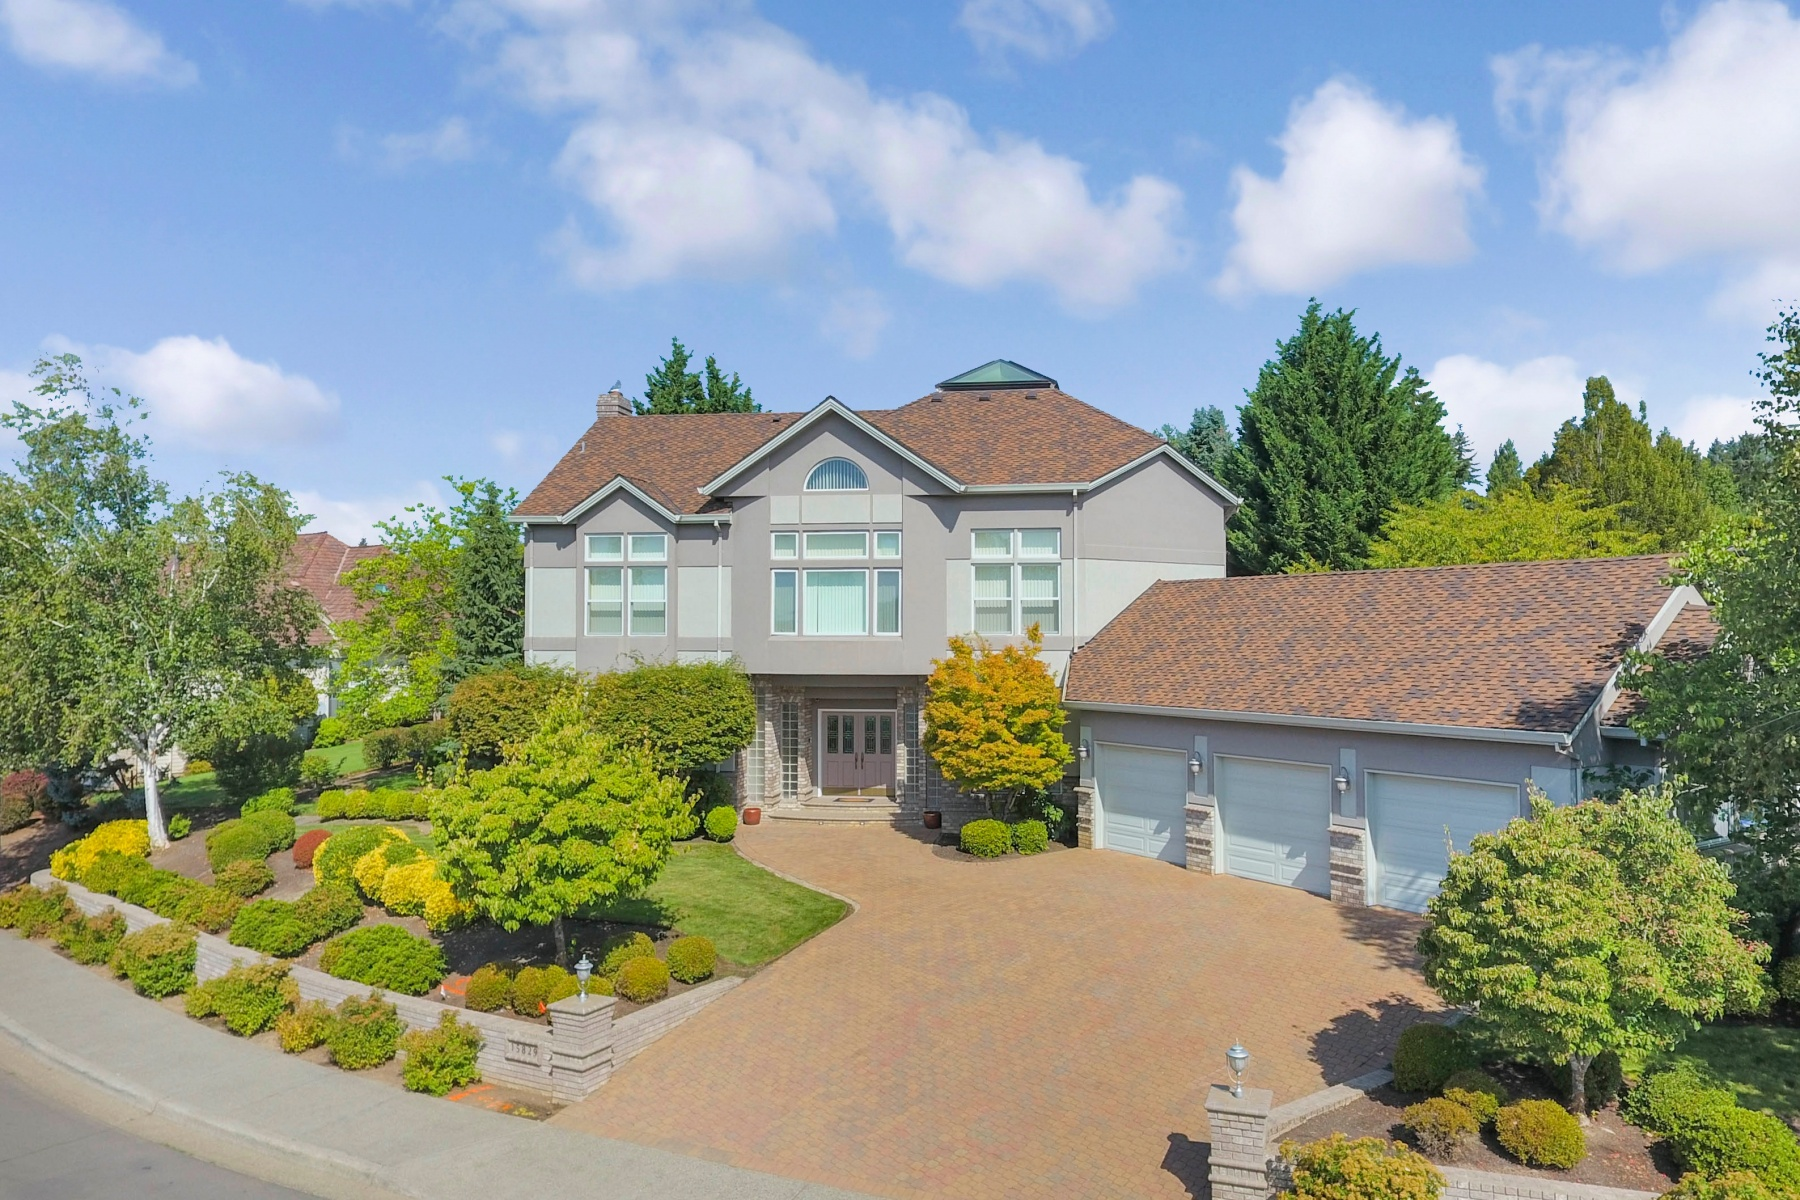 Single Family Homes for Active at 15829 SW DEKALB ST Tigard, Oregon 97224 United States